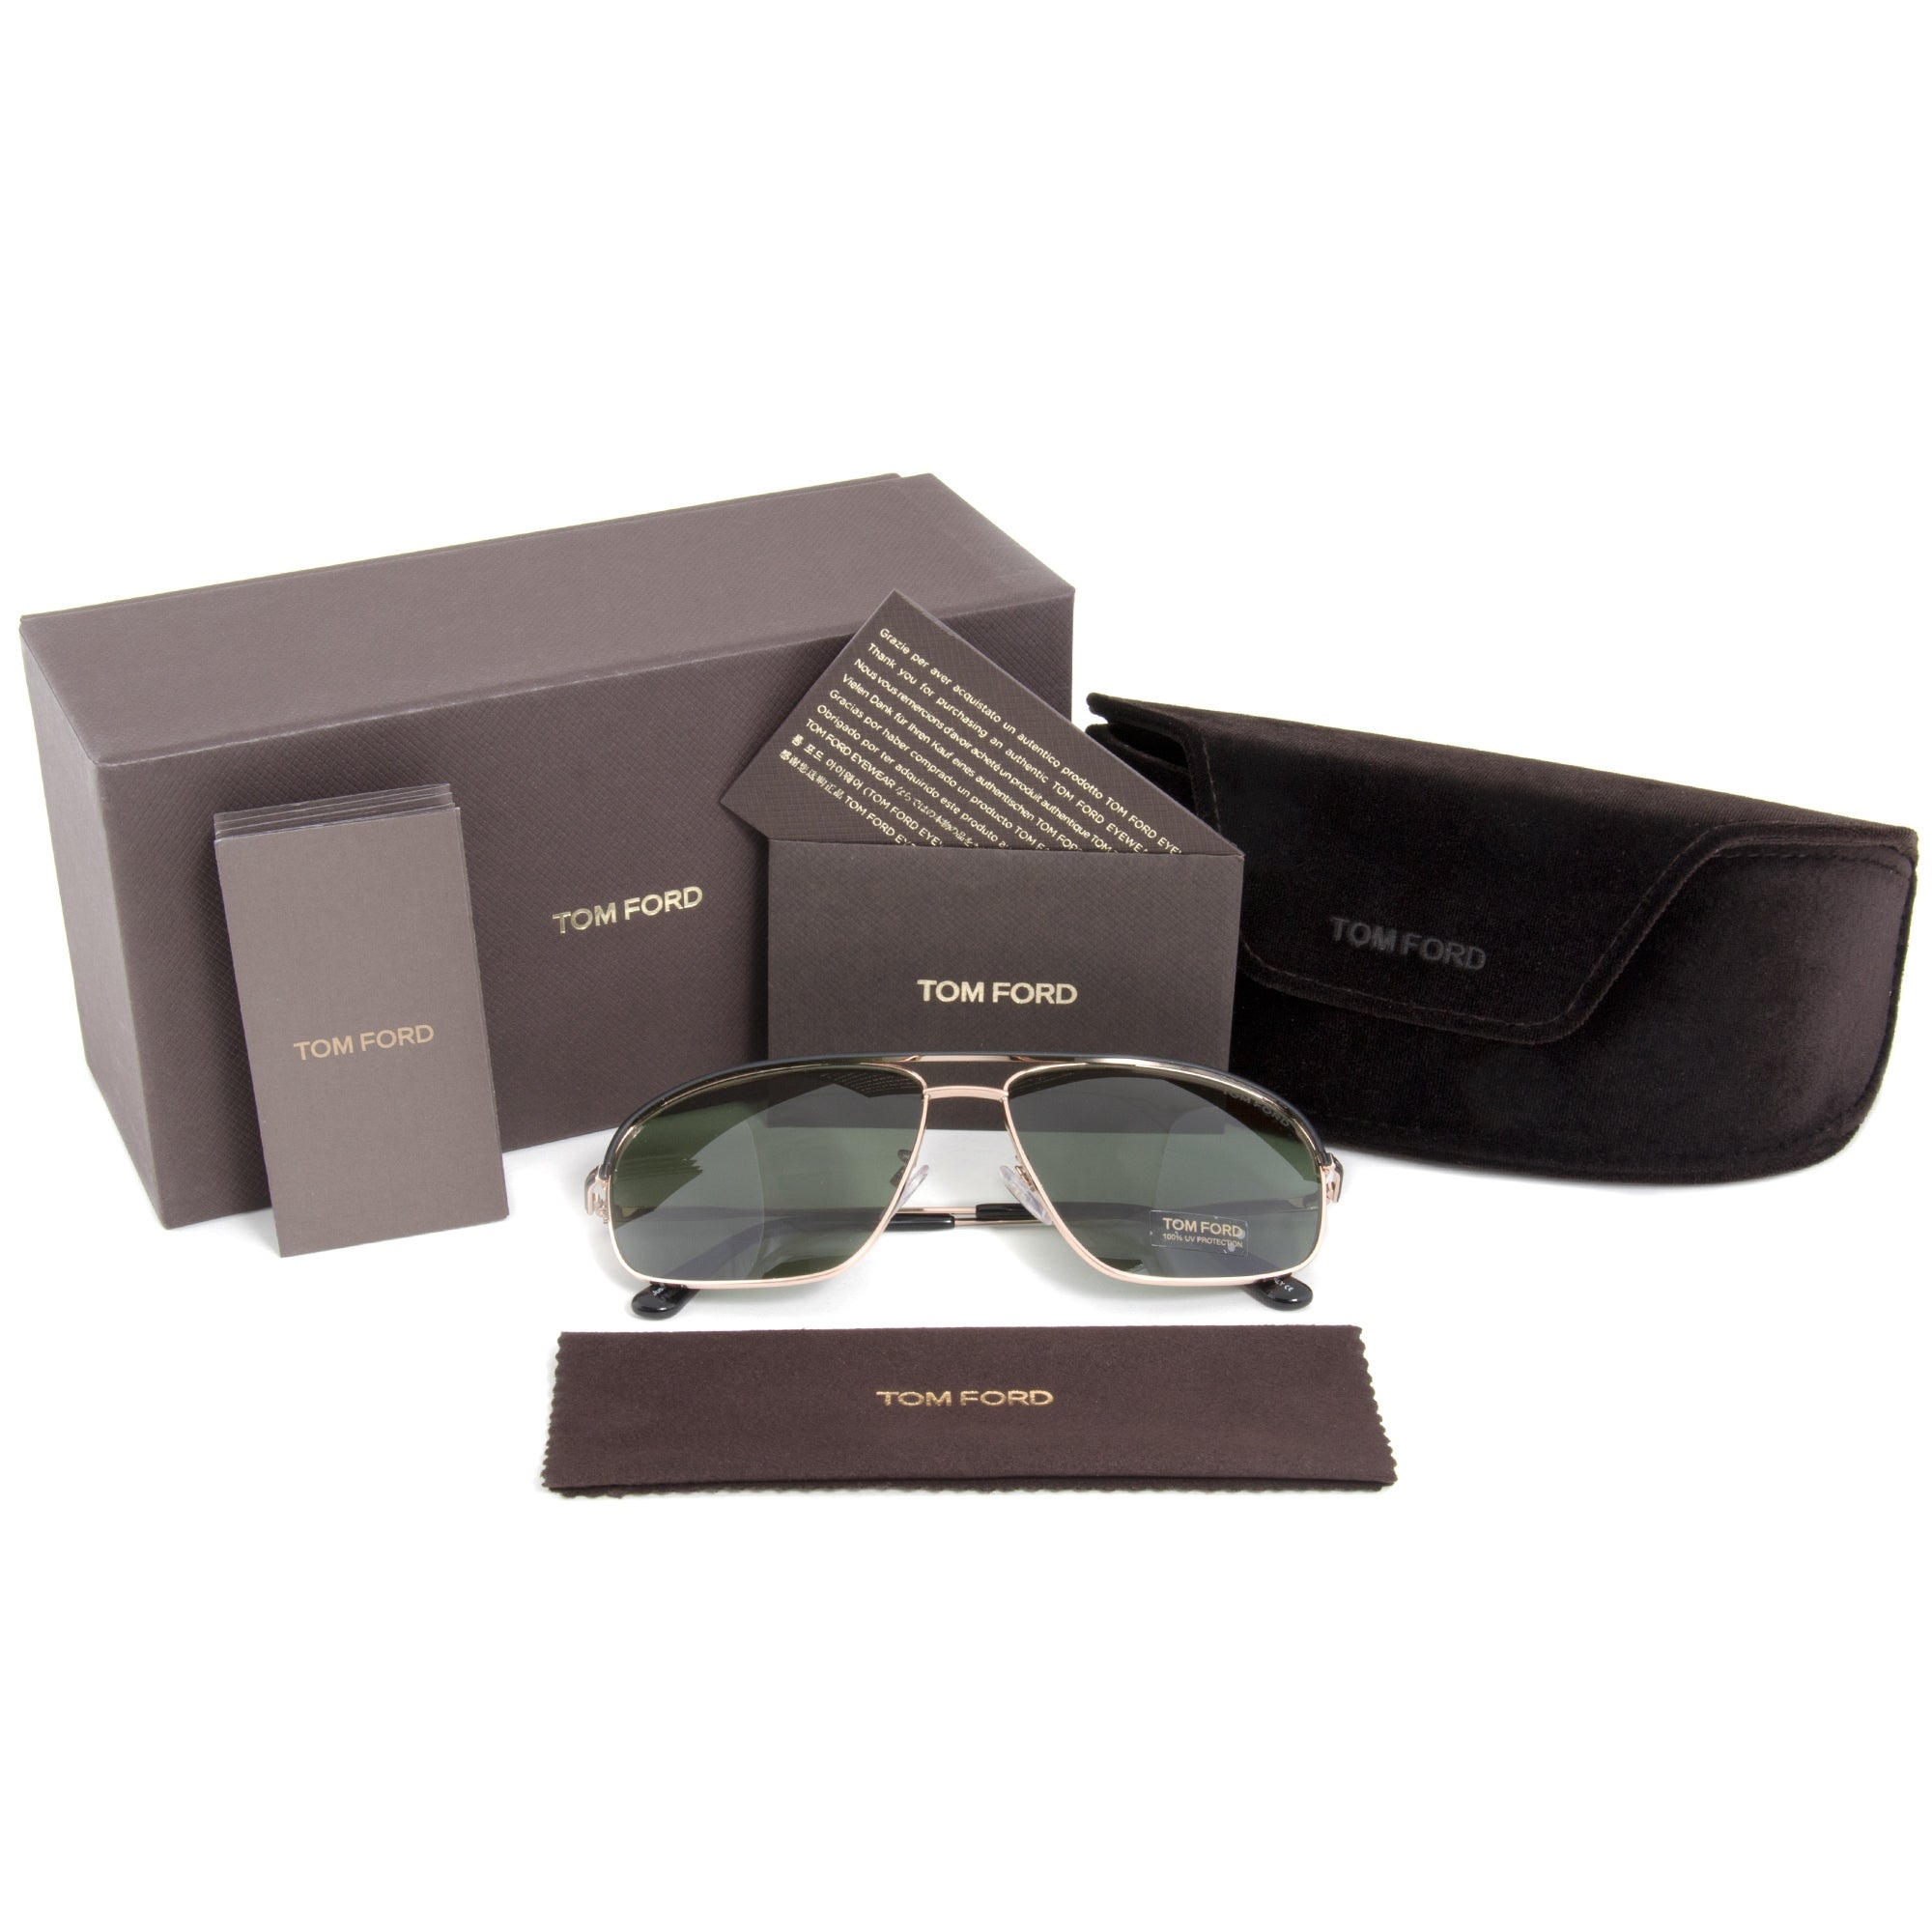 03bc5a065acd8 Shop Tom Ford Justin Sunglasses FT0467 02N - Free Shipping Today -  Overstock - 19622805